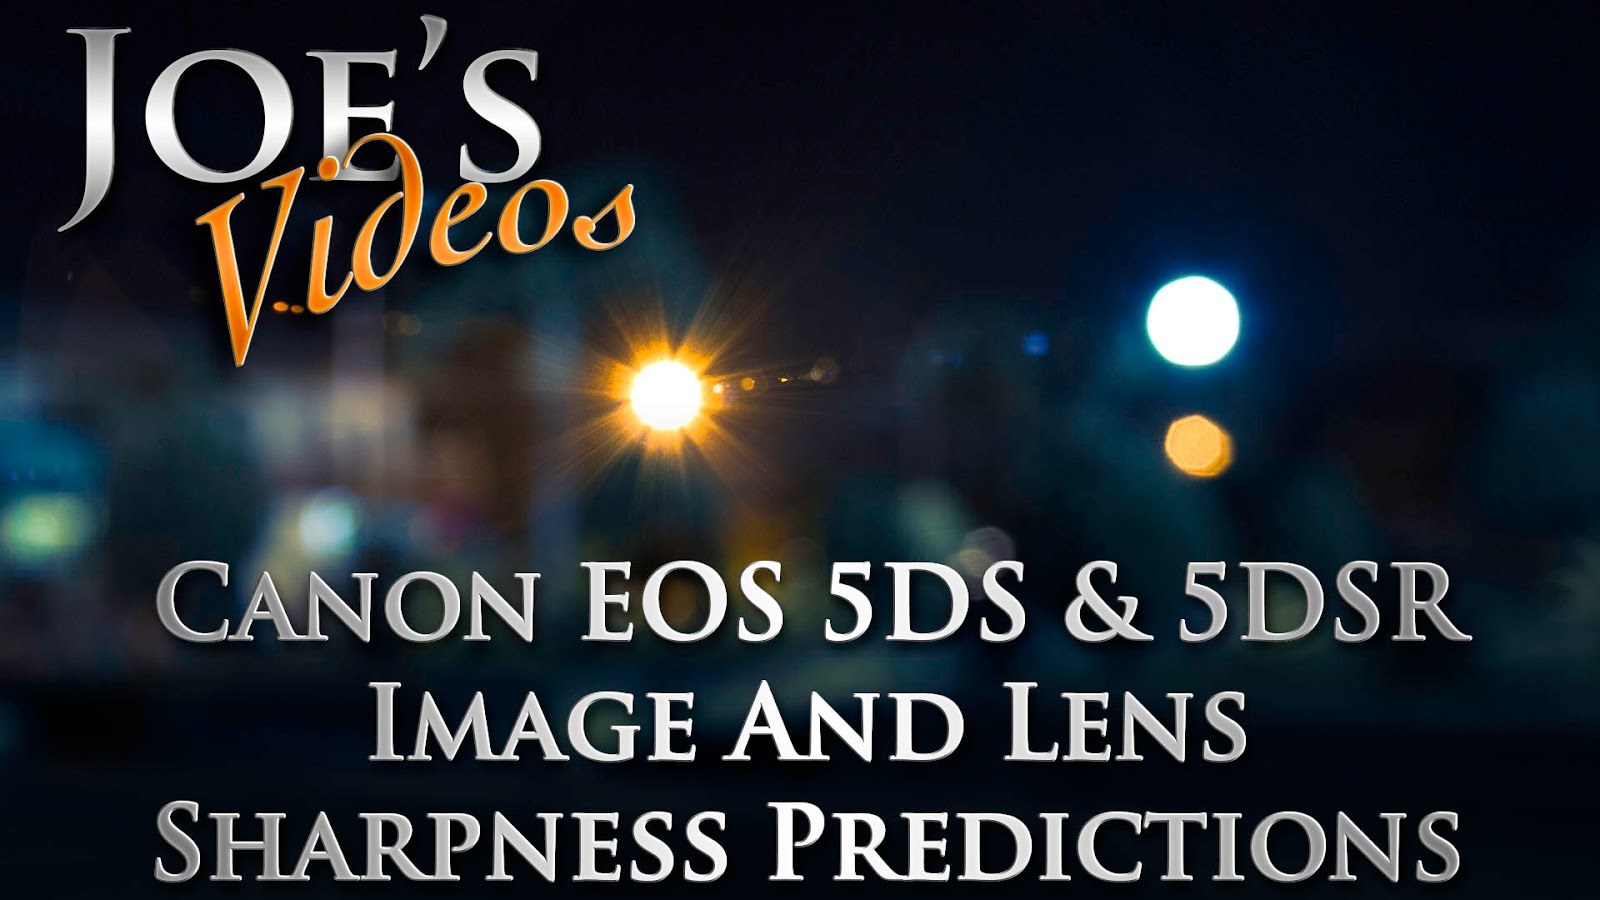 Canon EOS 5DS & 5DSR Image And Lens Sharpness Prediction | Joe's Videos